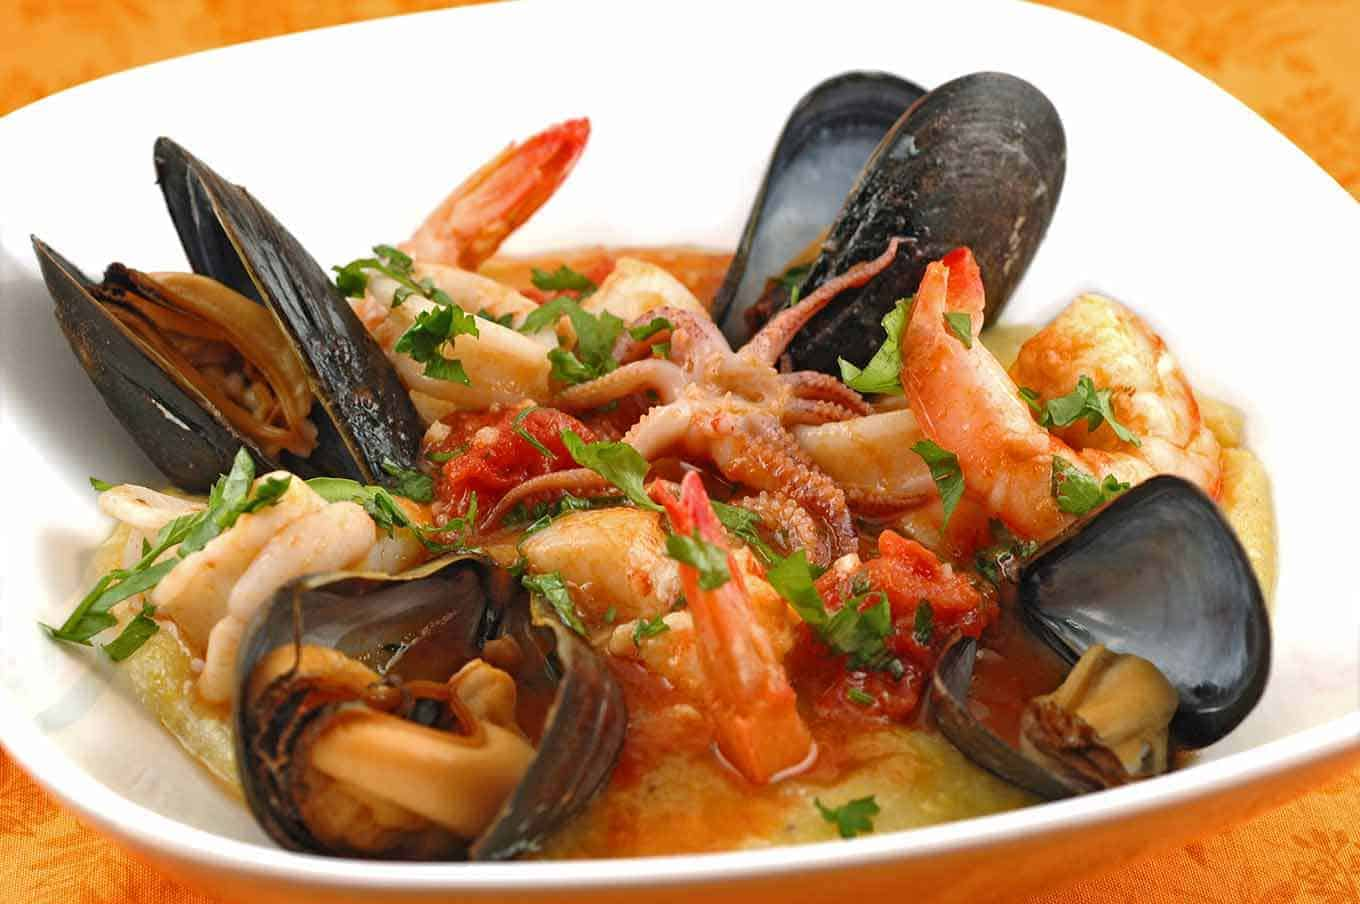 A shallow bowl of soft polenta topped with shrimp, scallops, mussels, and squid cooked in a light, tomato butter sauce.